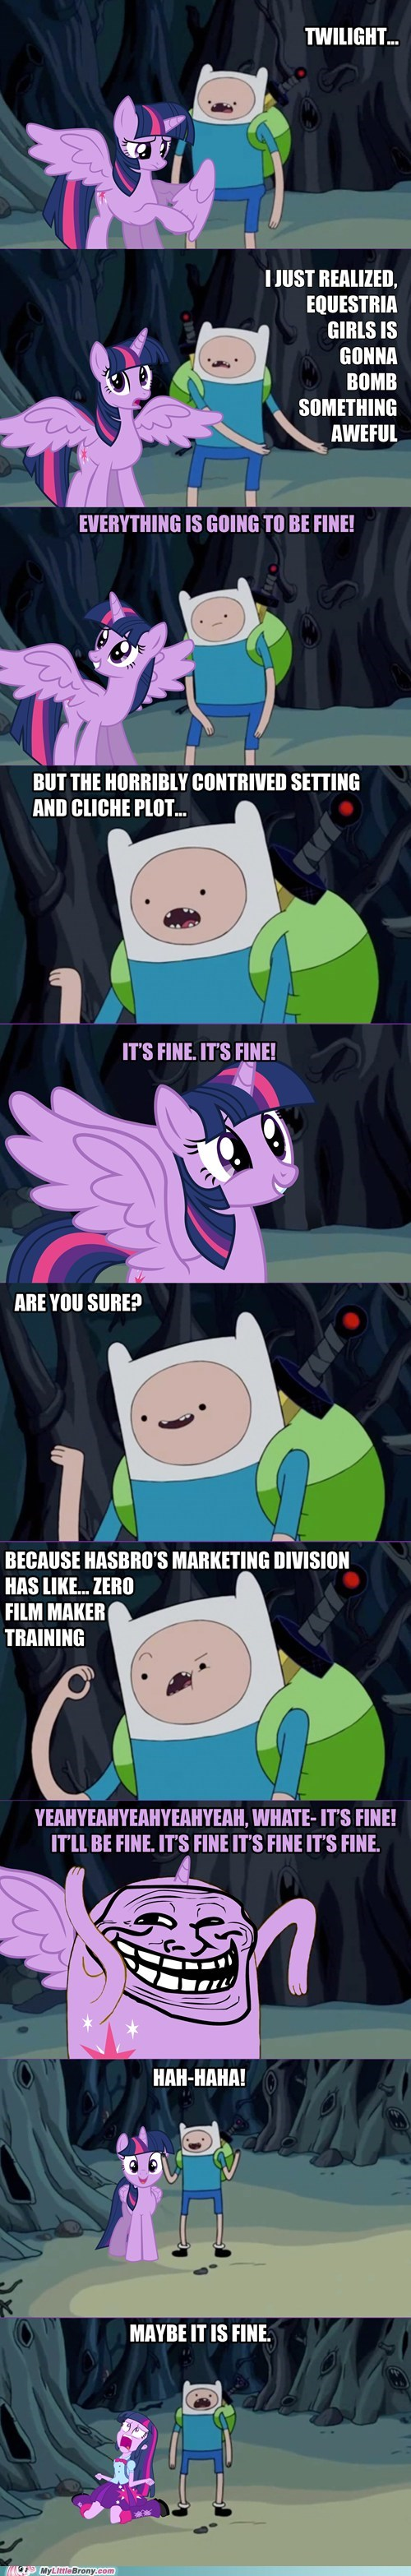 twilight sparkle comics funny adventure time - 7461235456